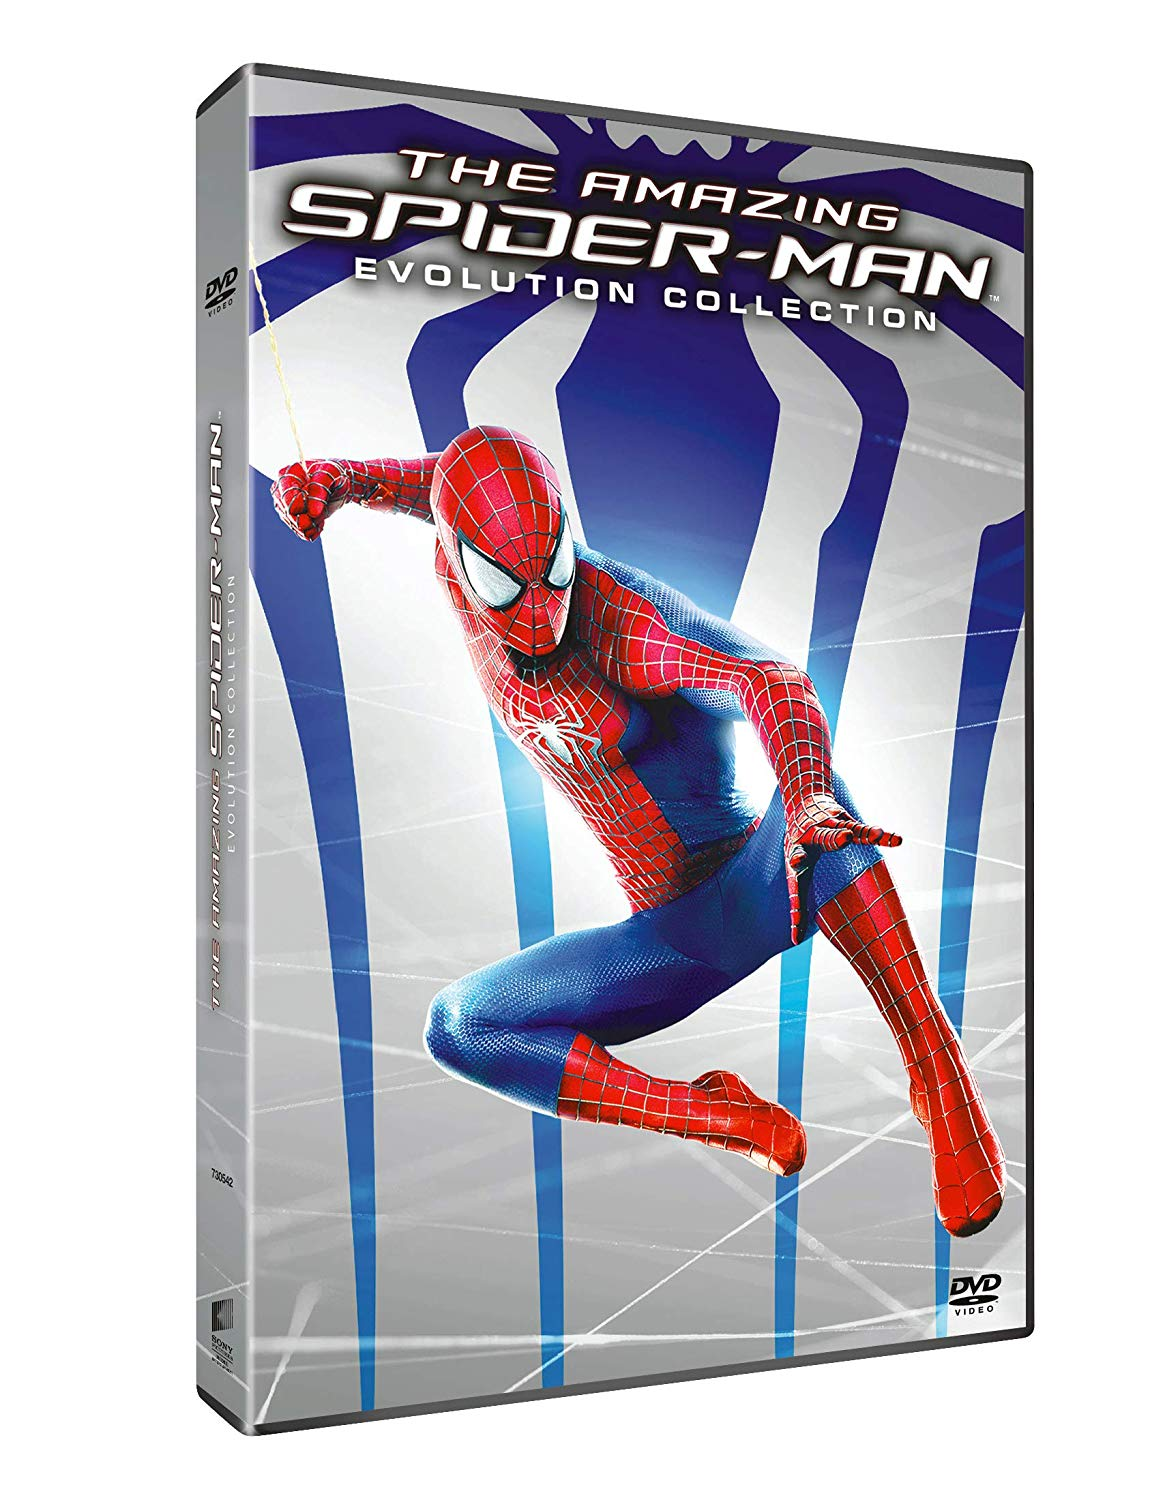 COF.THE AMAZING SPIDER-MAN - EVOLUTION COLLECTION (2 DVD) (DVD)